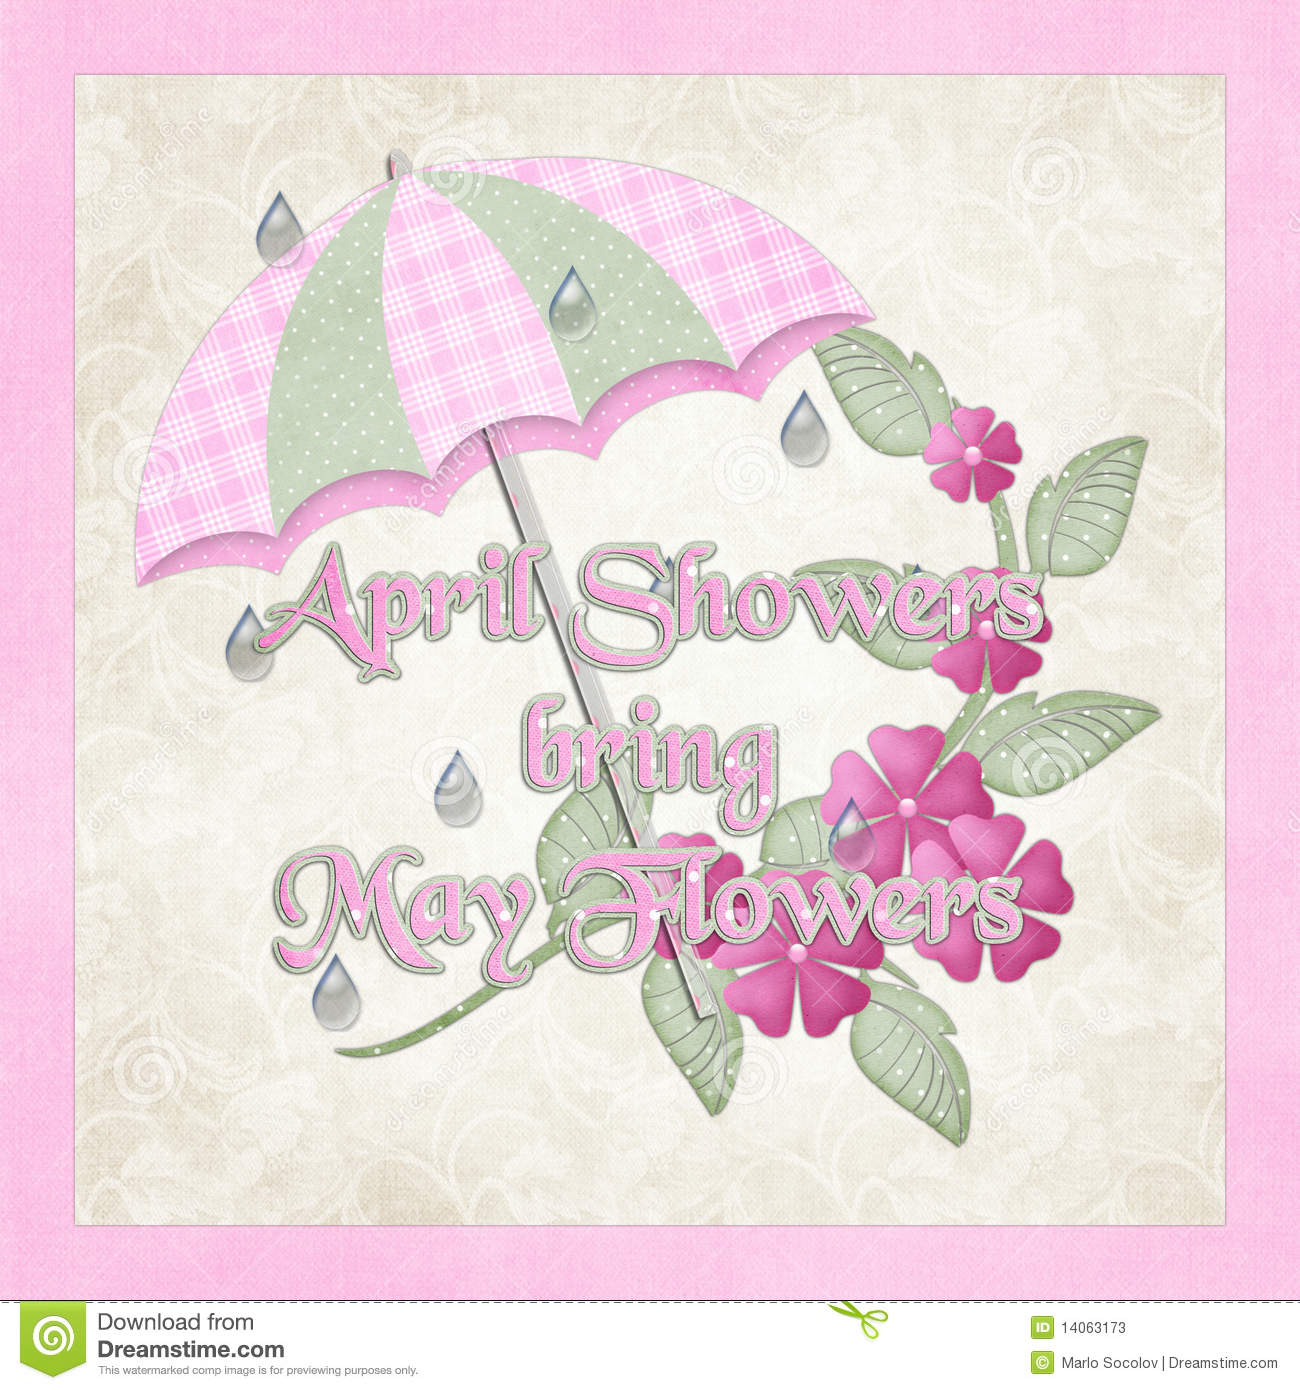 April Showers Bring May Flowers Stock s Image